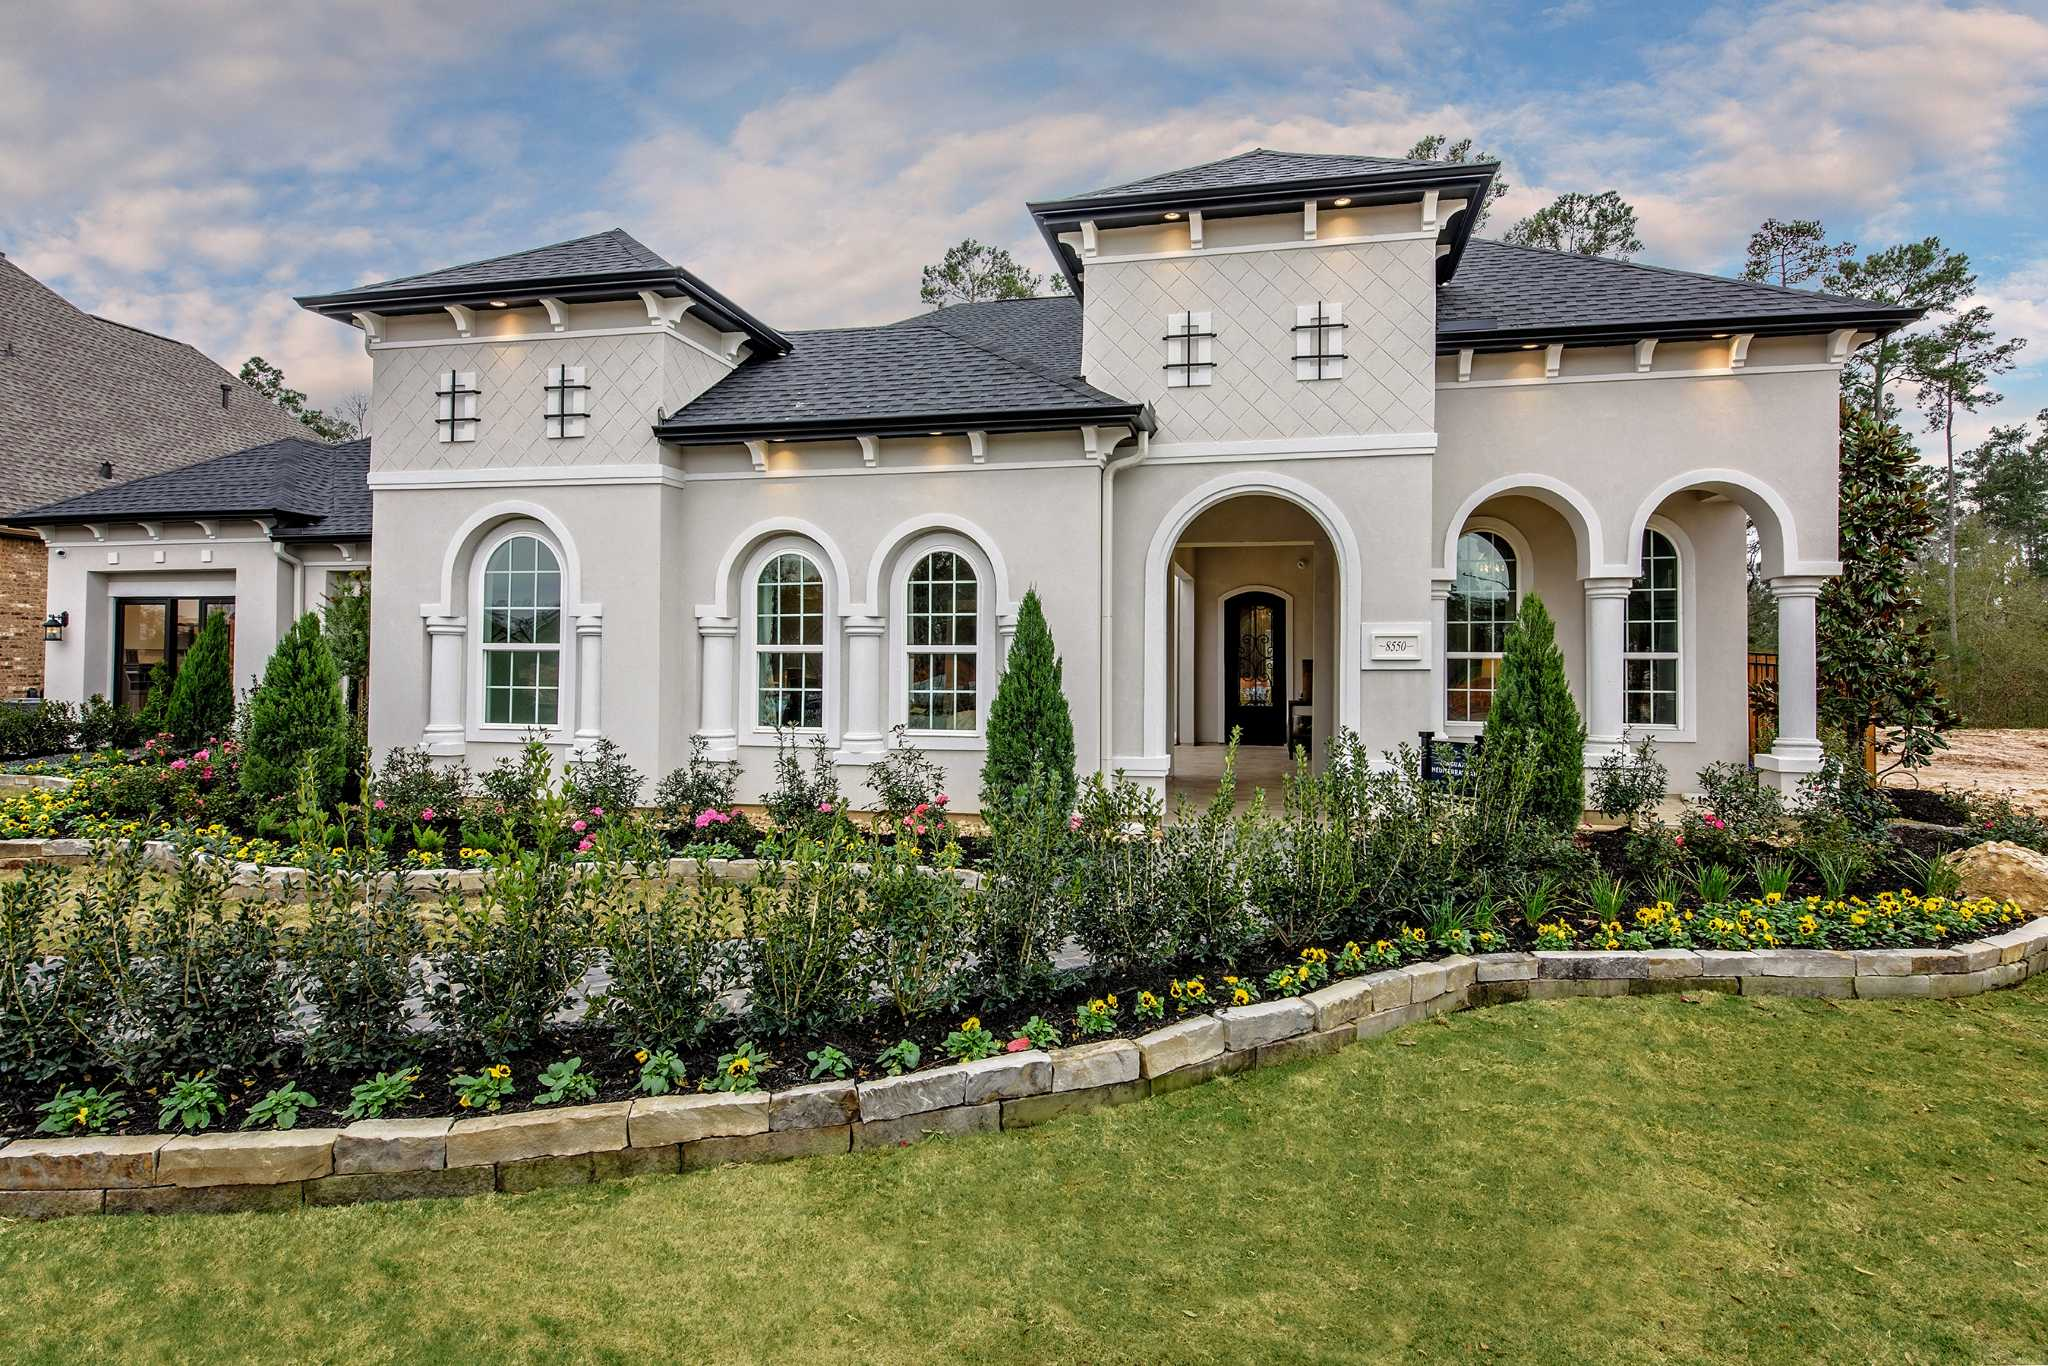 northgrove at spring creek toll brothers opens doors to two professionally decorated model homes houston chronicle